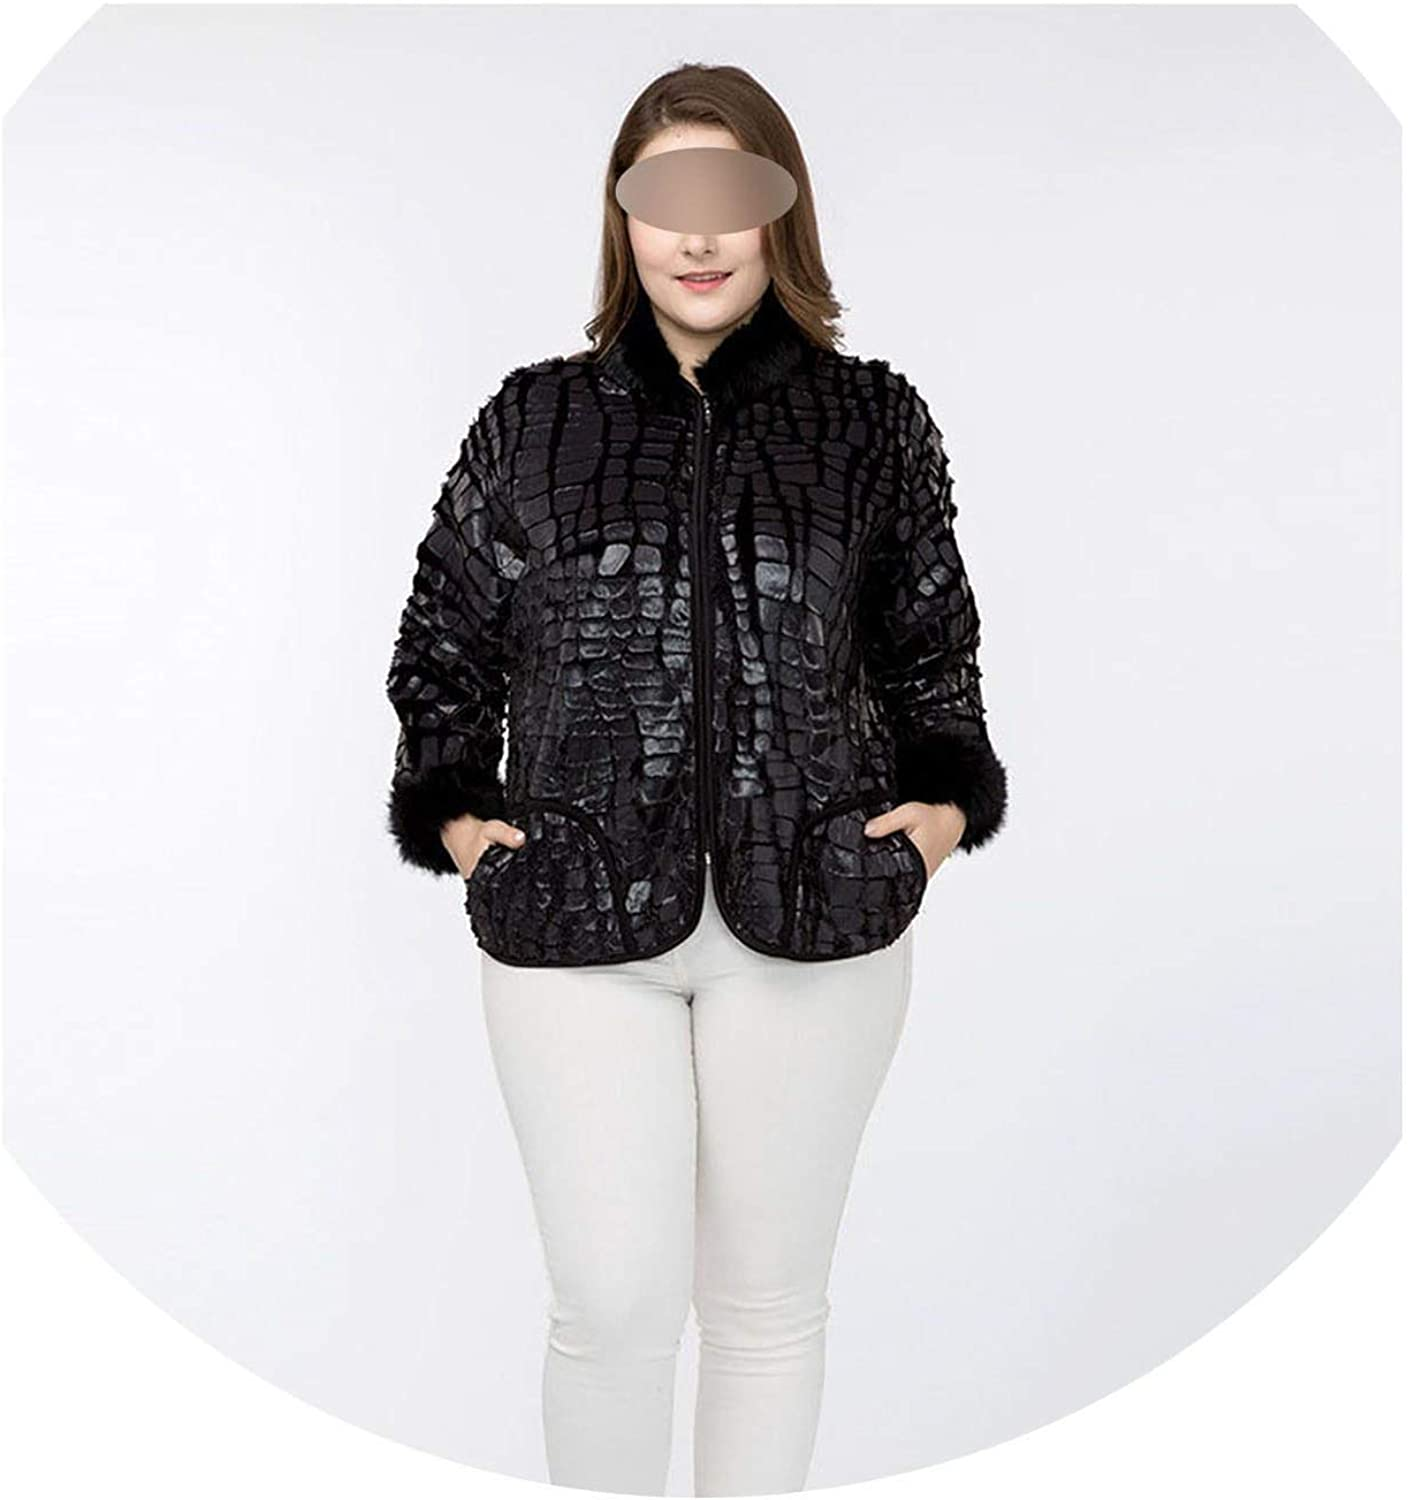 Contentment Fur Sleeve Stand Collar Faux Crocodile Leather Skin Warm Jacket